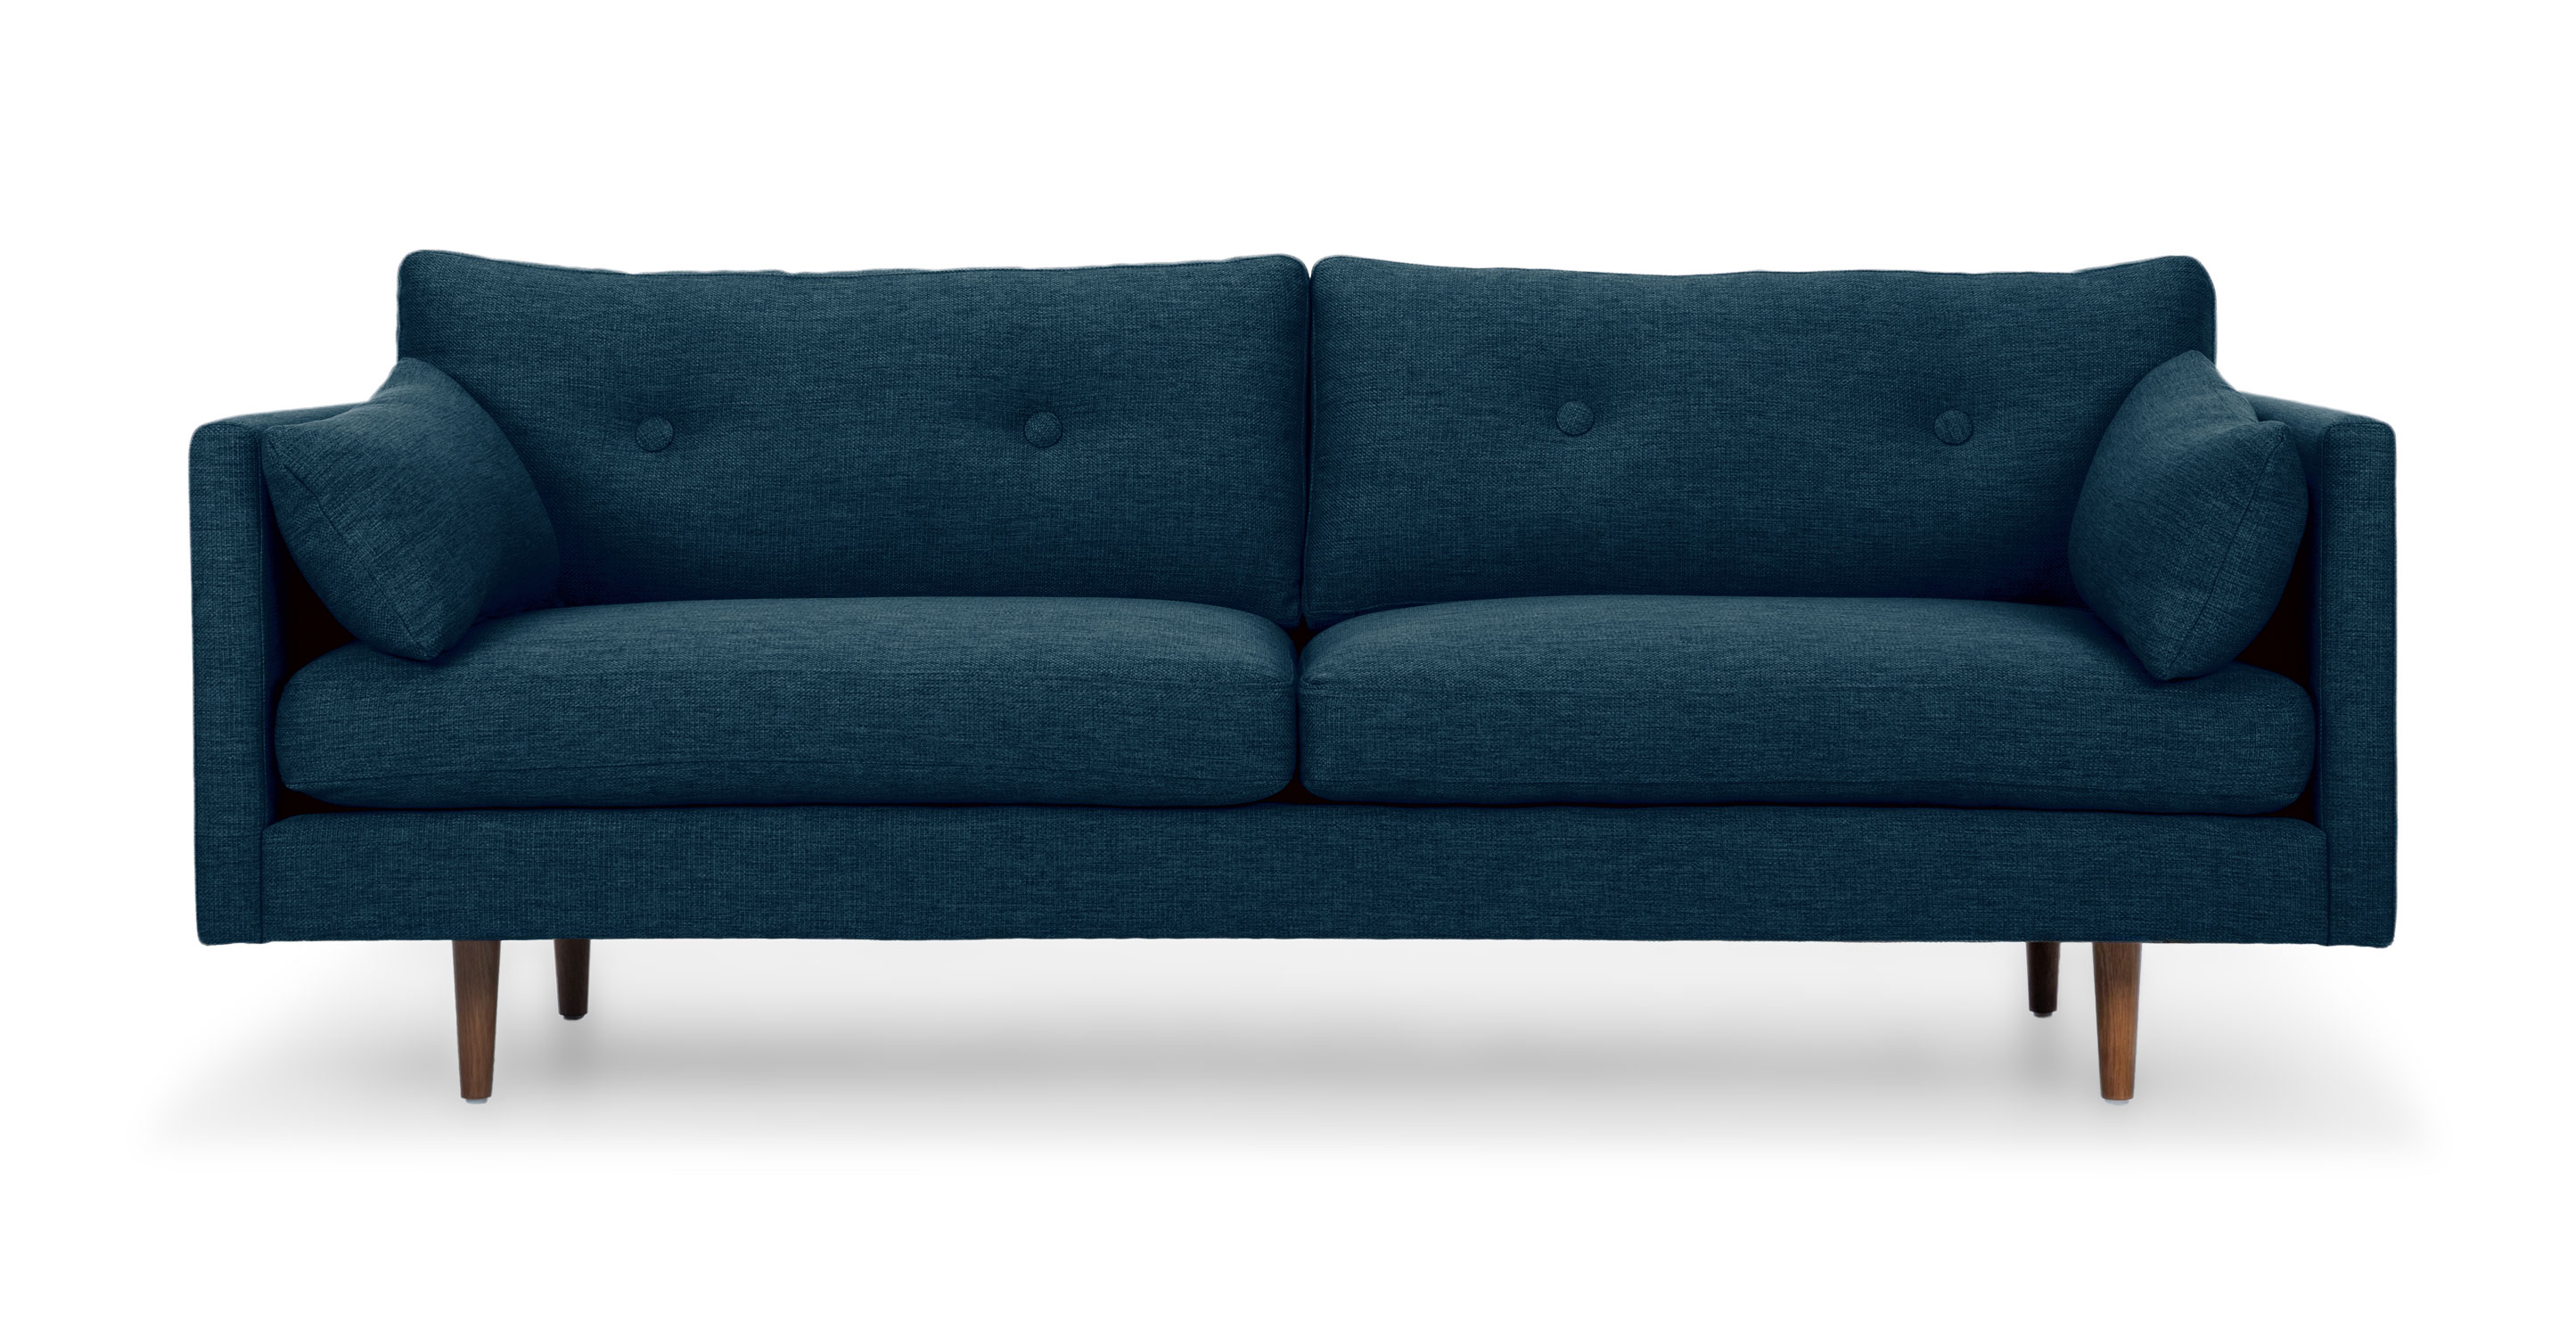 Skandinavische Couch Dark Blue Tufted Sofa 3 Seat Solid Wood Legs Article Anton Modern Furniture